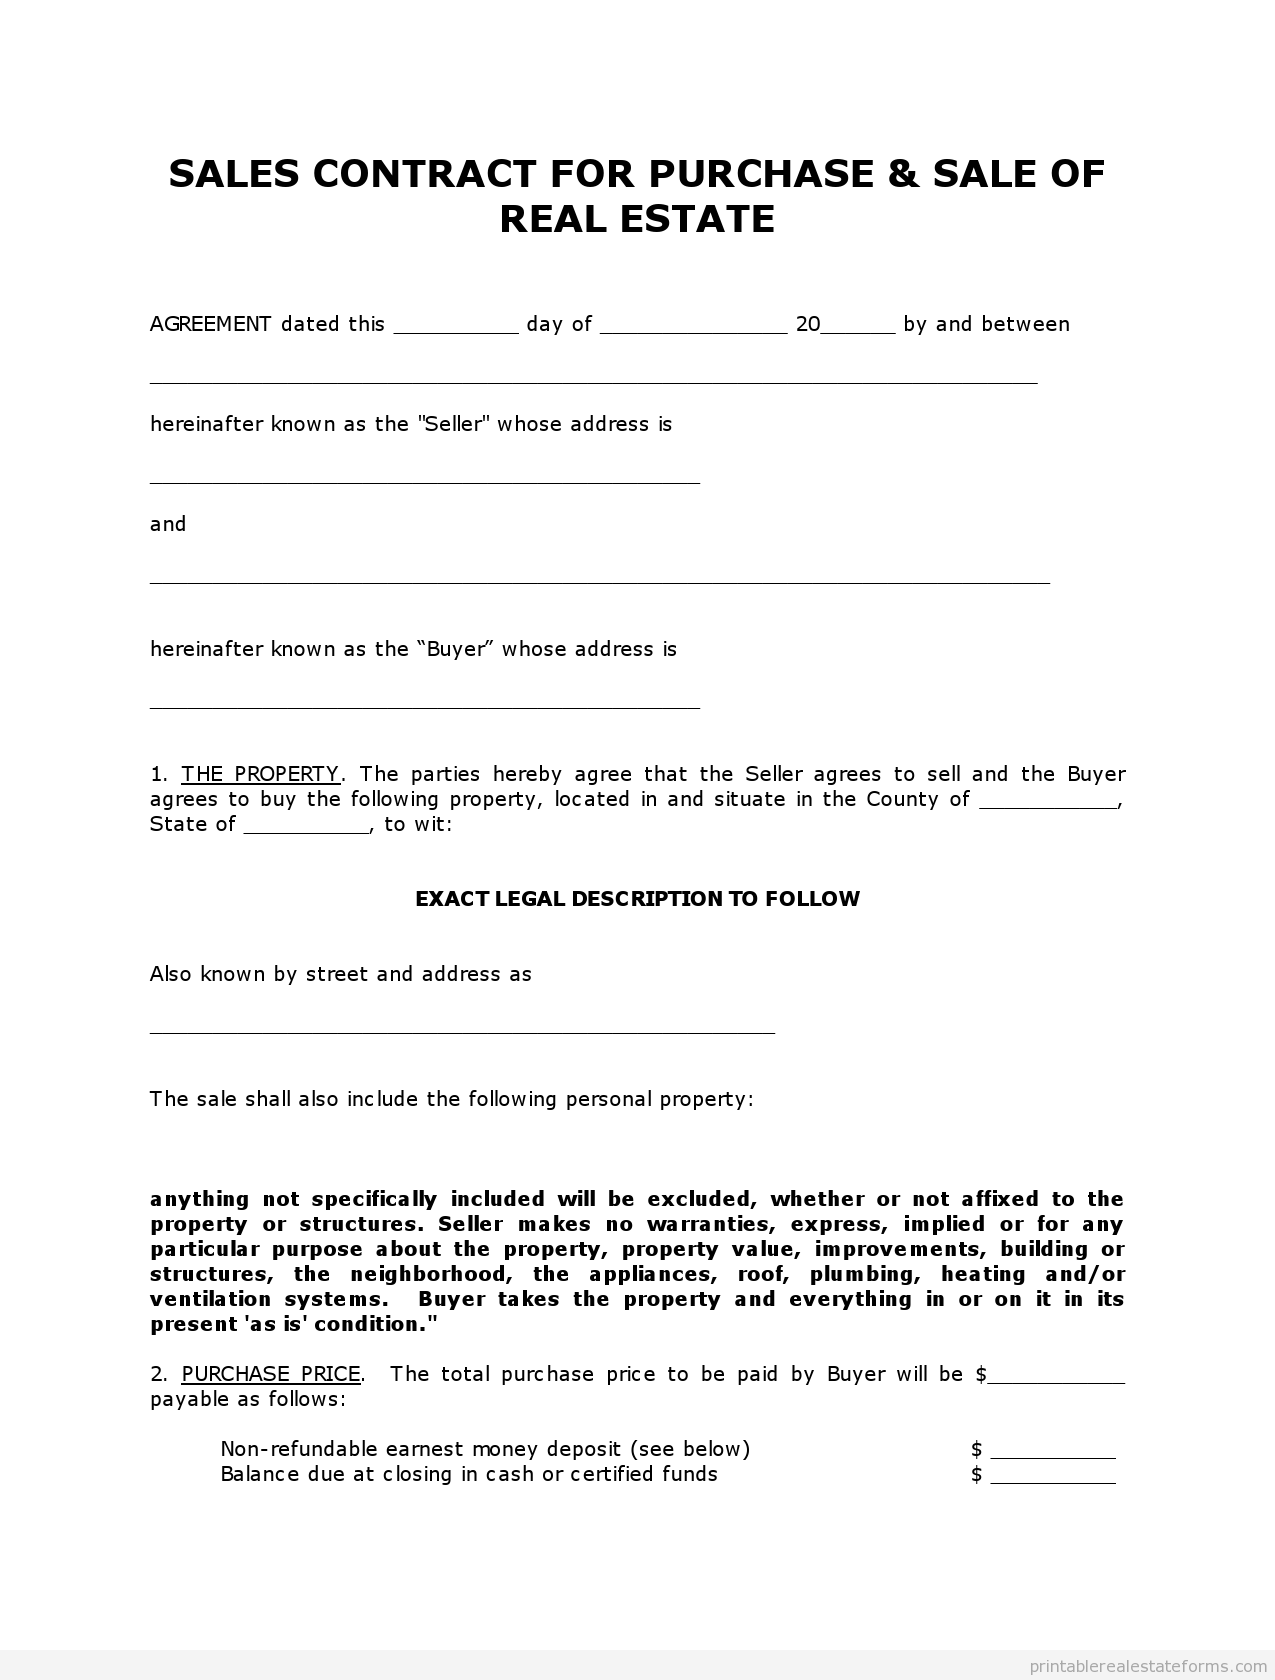 simple buy sell agreement form Get High Quality Printable Simple land contract form. Editable ...